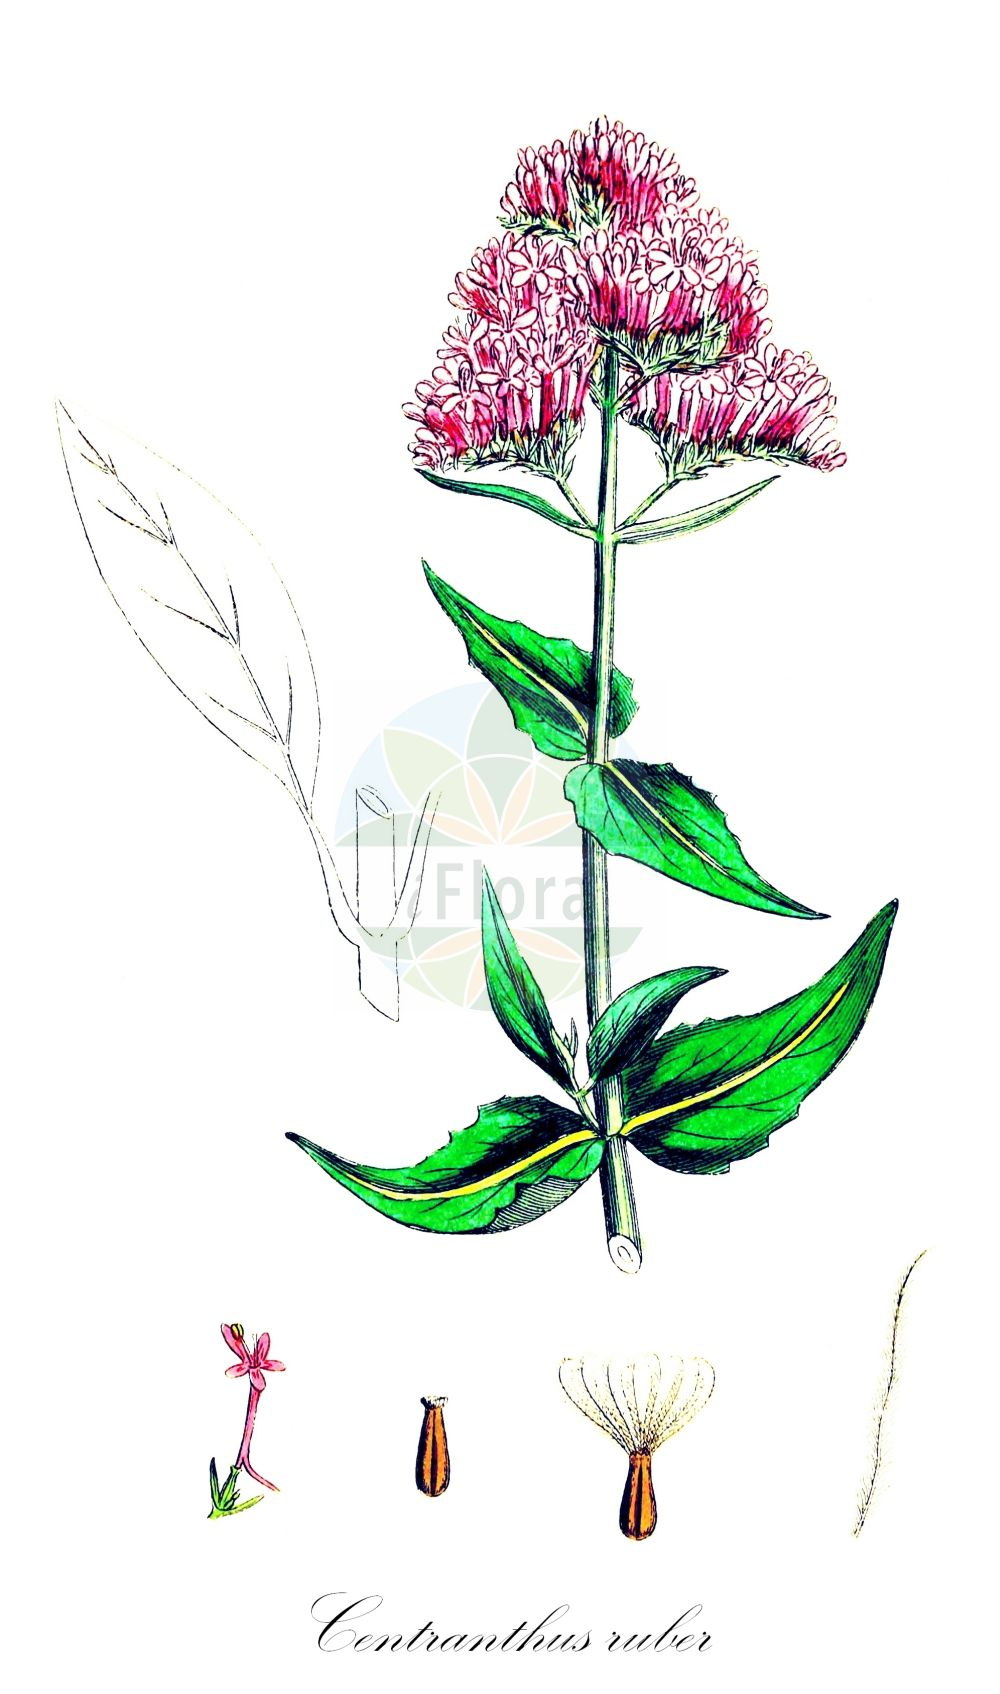 Historische Abbildung von Centranthus ruber (Rote Spornblume - Red Valerian). Das Bild zeigt Blatt, Bluete, Frucht und Same. ---- Historical Drawing of Centranthus ruber (Rote Spornblume - Red Valerian).The image is showing leaf, flower, fruit and seed.(Centranthus ruber,Rote Spornblume,Red Valerian,Centranthus latifolius,Centranthus marinus,Valeriana alba,Valeriana florida,Valeriana rubra,Spornbaldrian,American Lilac,Codbed,Fox's Brush,Kiss-me,Kiss-me-Quick,Pretty Betsy,Spur Valerian,Sweet Betsy,Centranthus,Spornblume,Lilac,Caprifoliaceae,Geissblattgewaechse,Honeysuckle family,Blatt,Bluete,Frucht,Same,leaf,flower,fruit,seed,Sowerby (1790-1813))